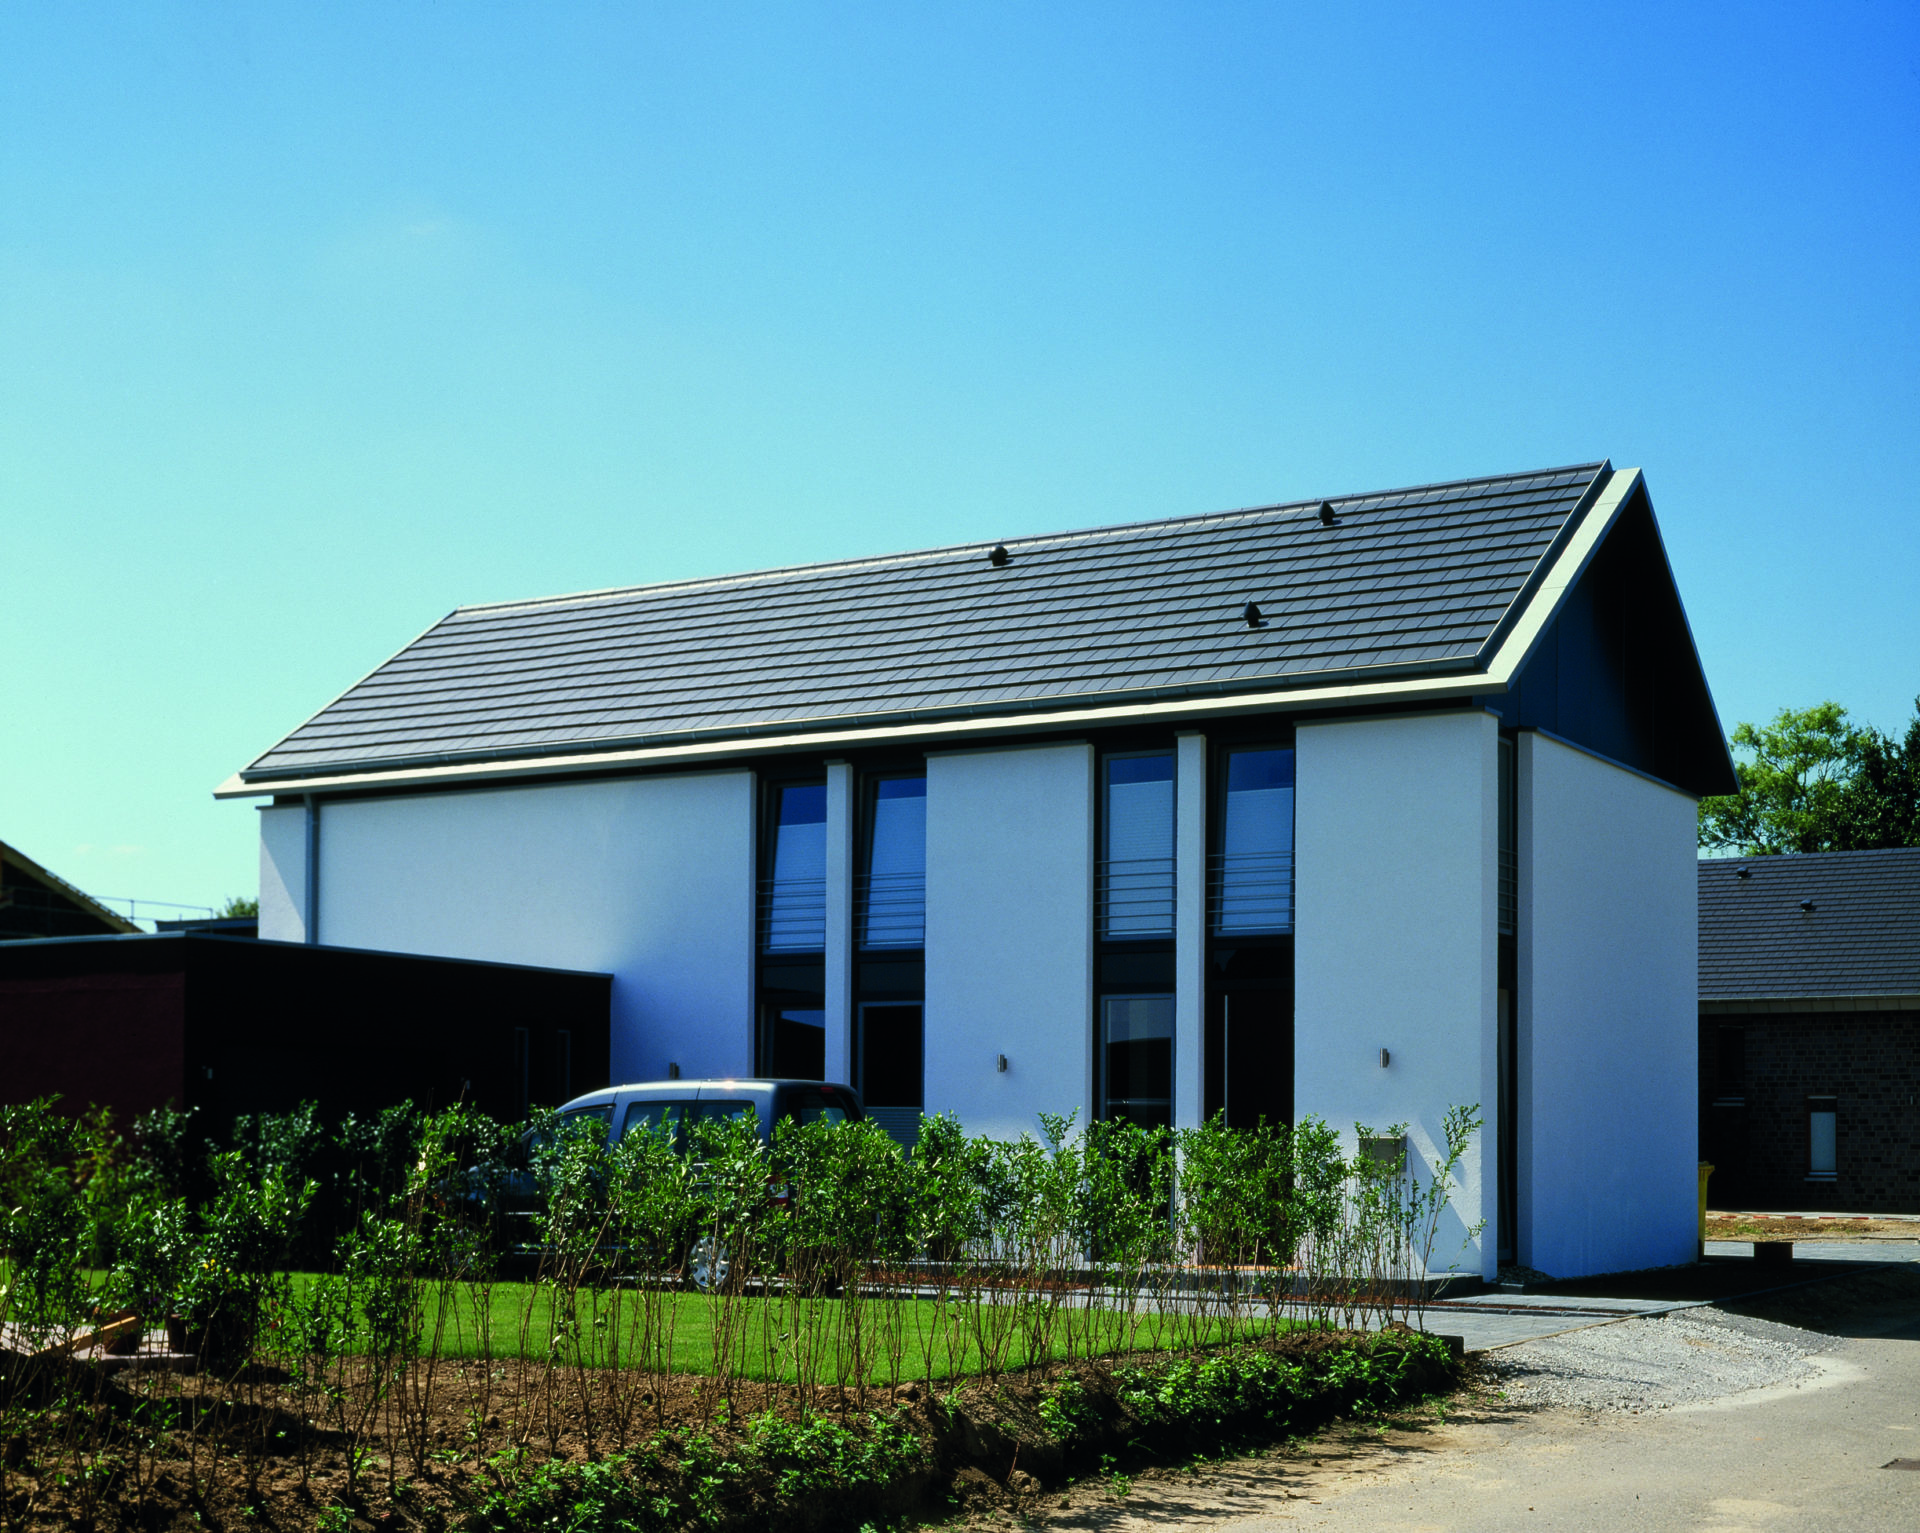 Marley Domino Flat Clay Roof Tile Marley Roofing